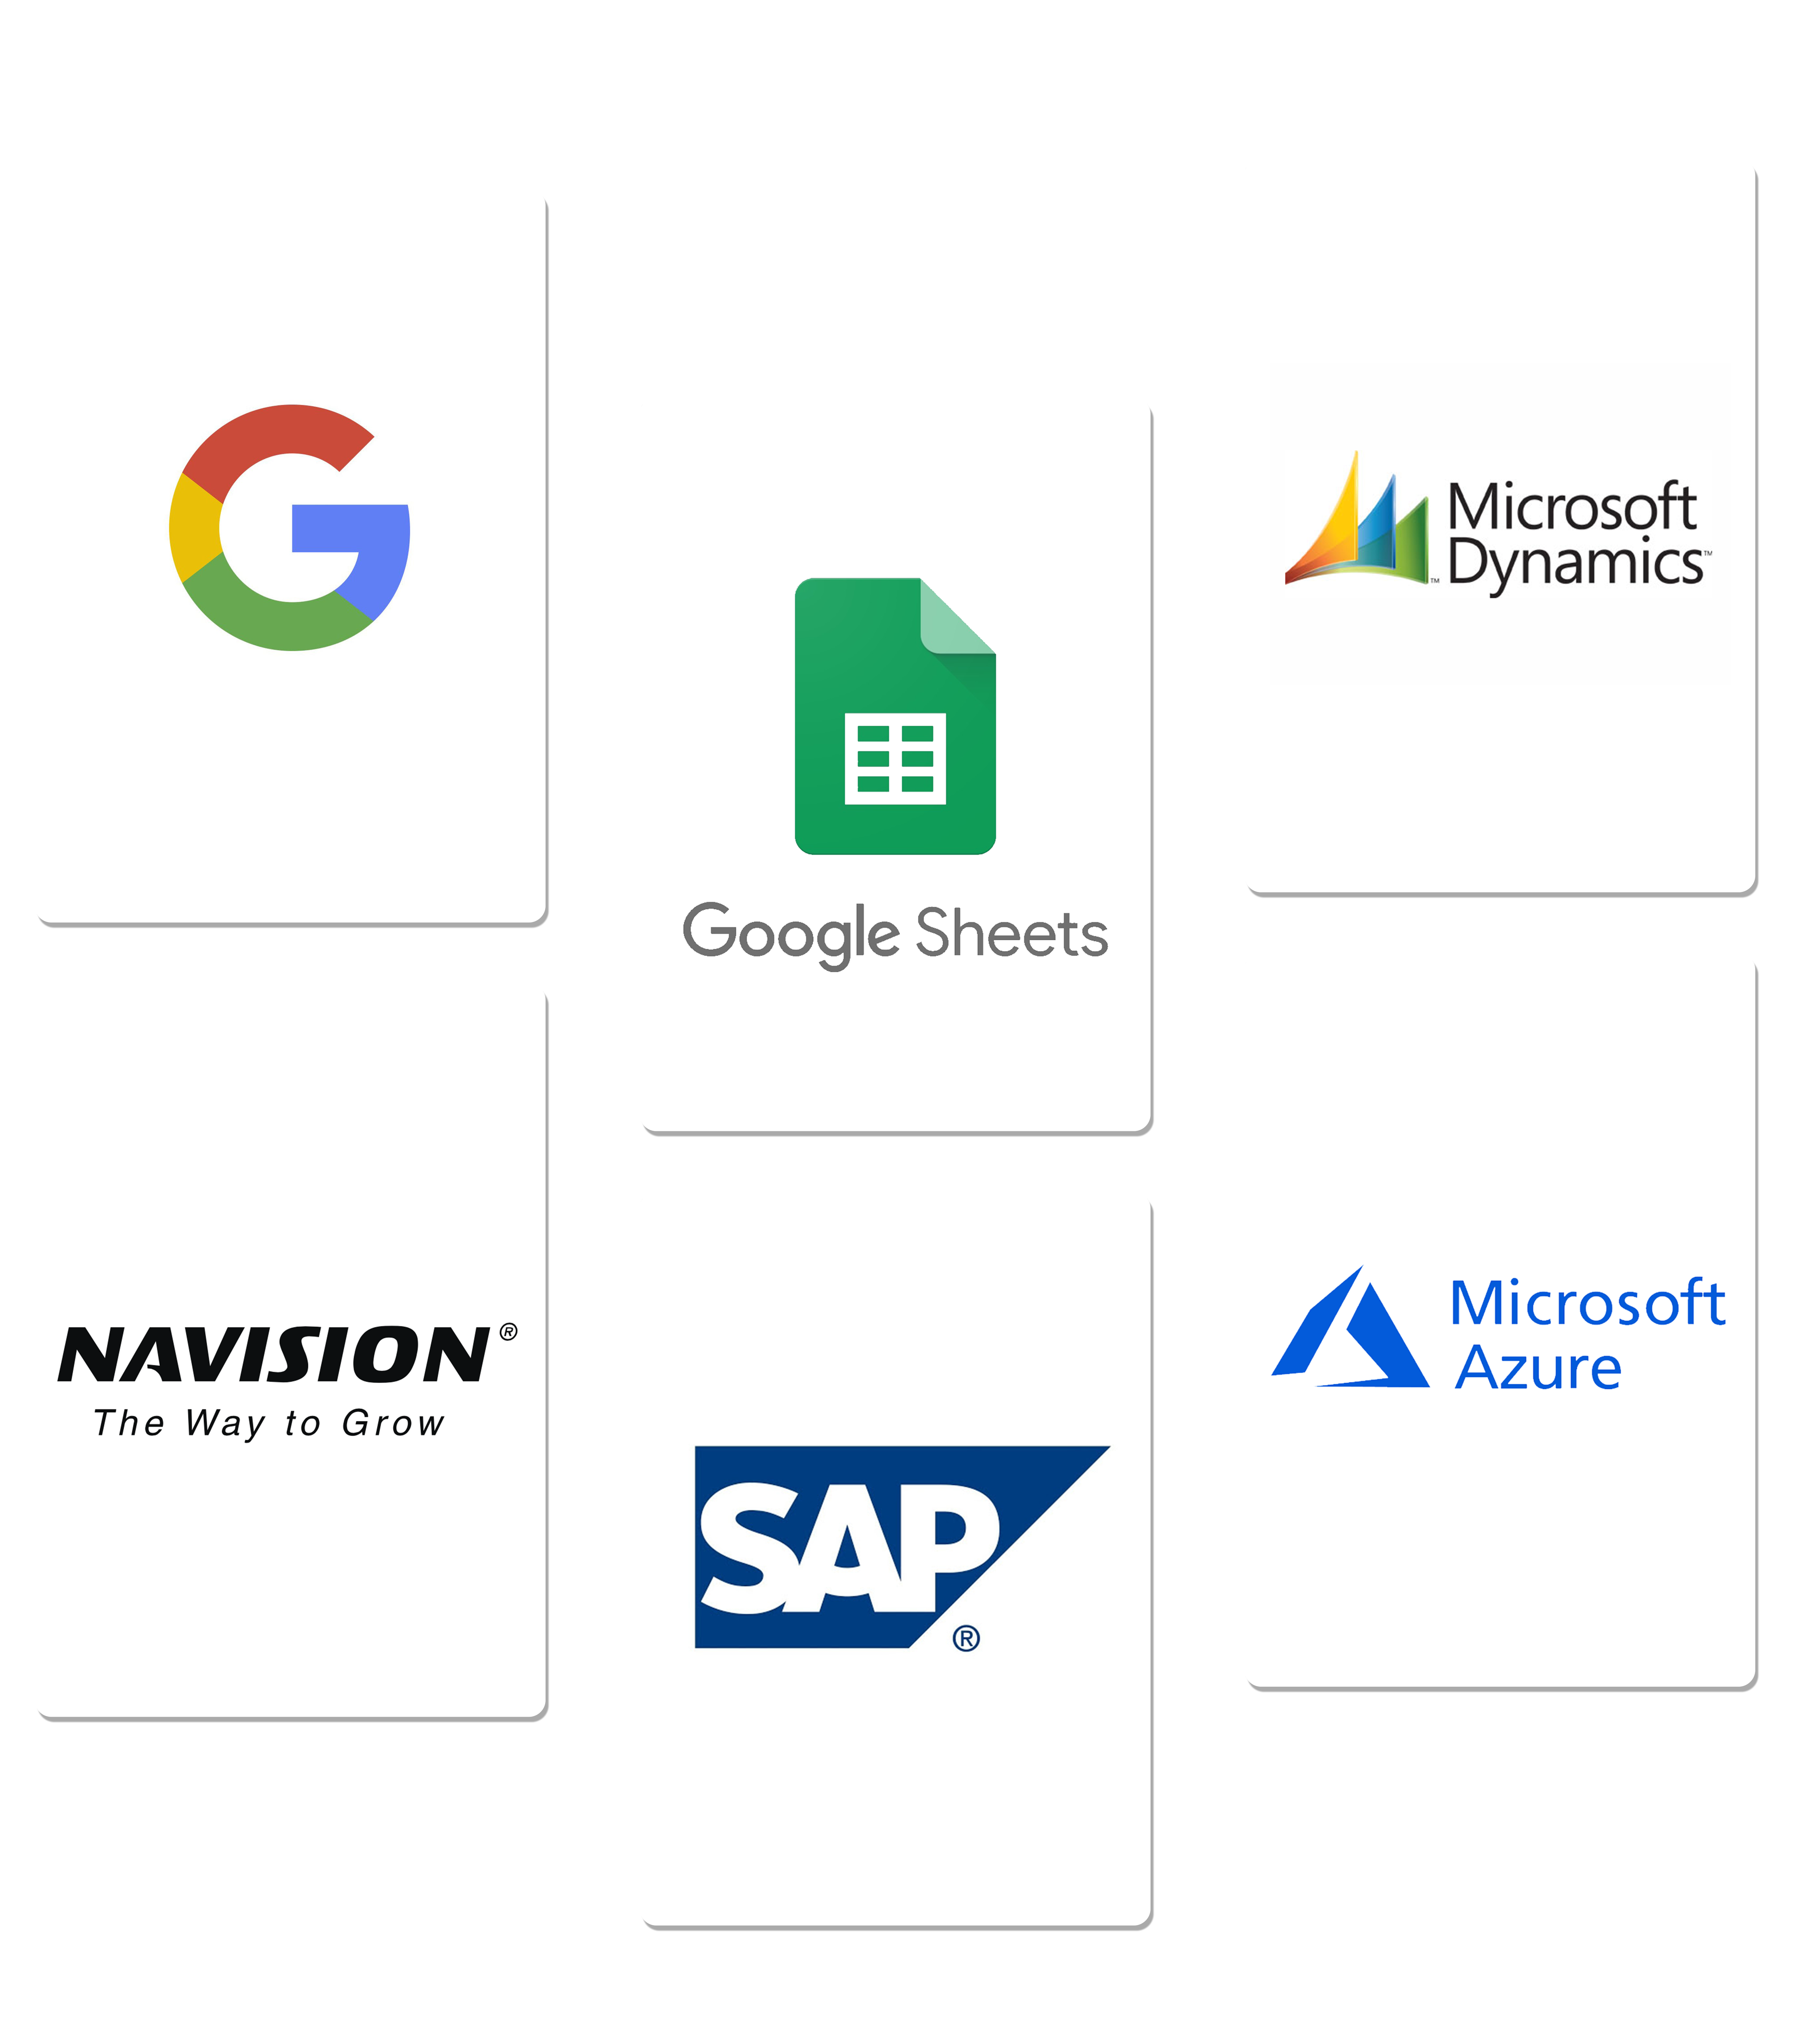 CMMS software that integrates with Google, Microsoft Dynamics and world's top tools.